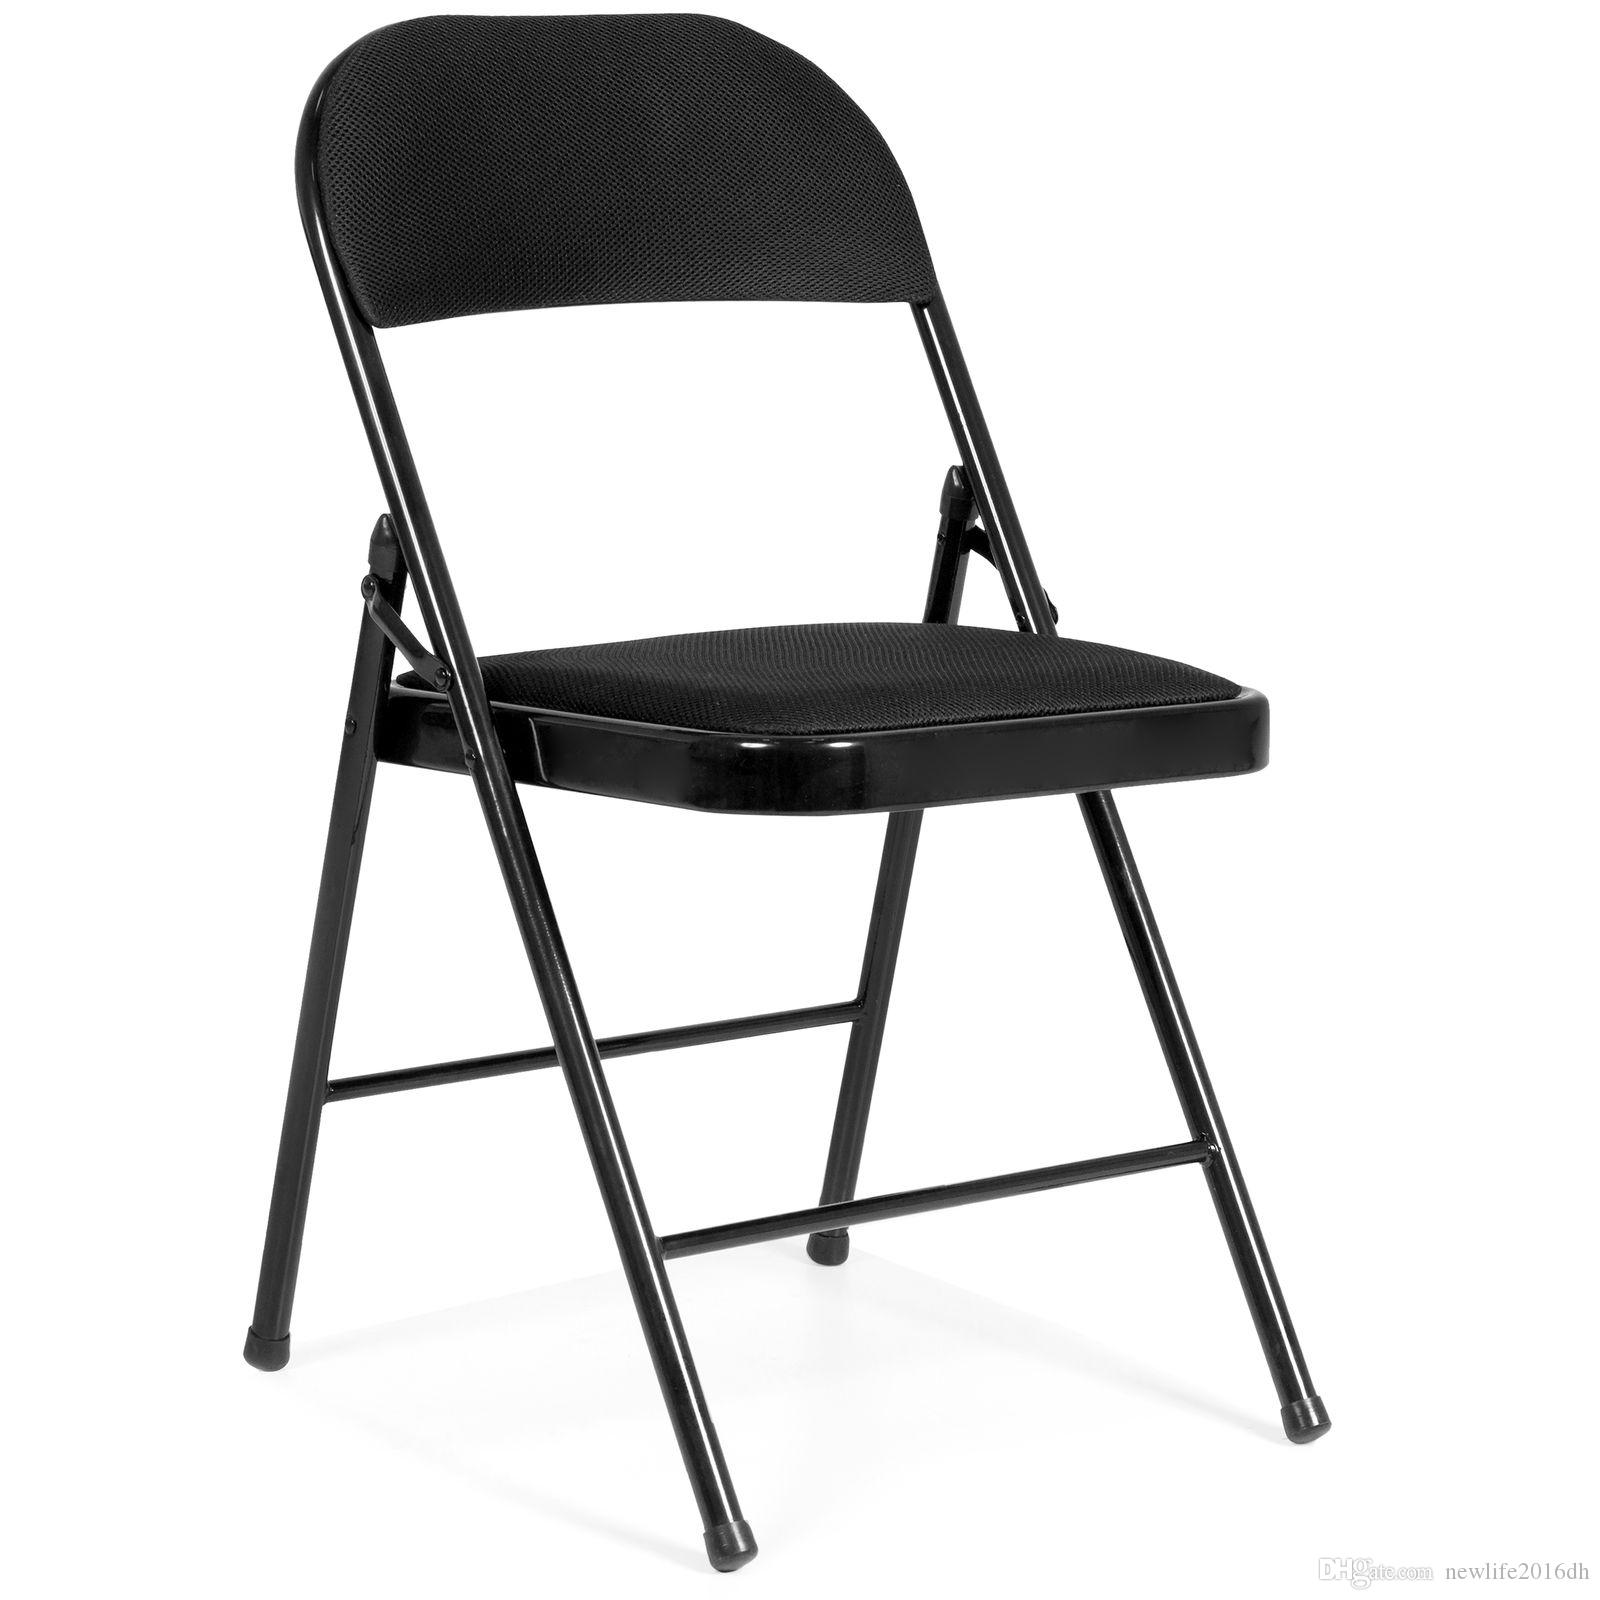 Best Set Of 4 Steel Black Fabric Folding Chairs Home Office ...